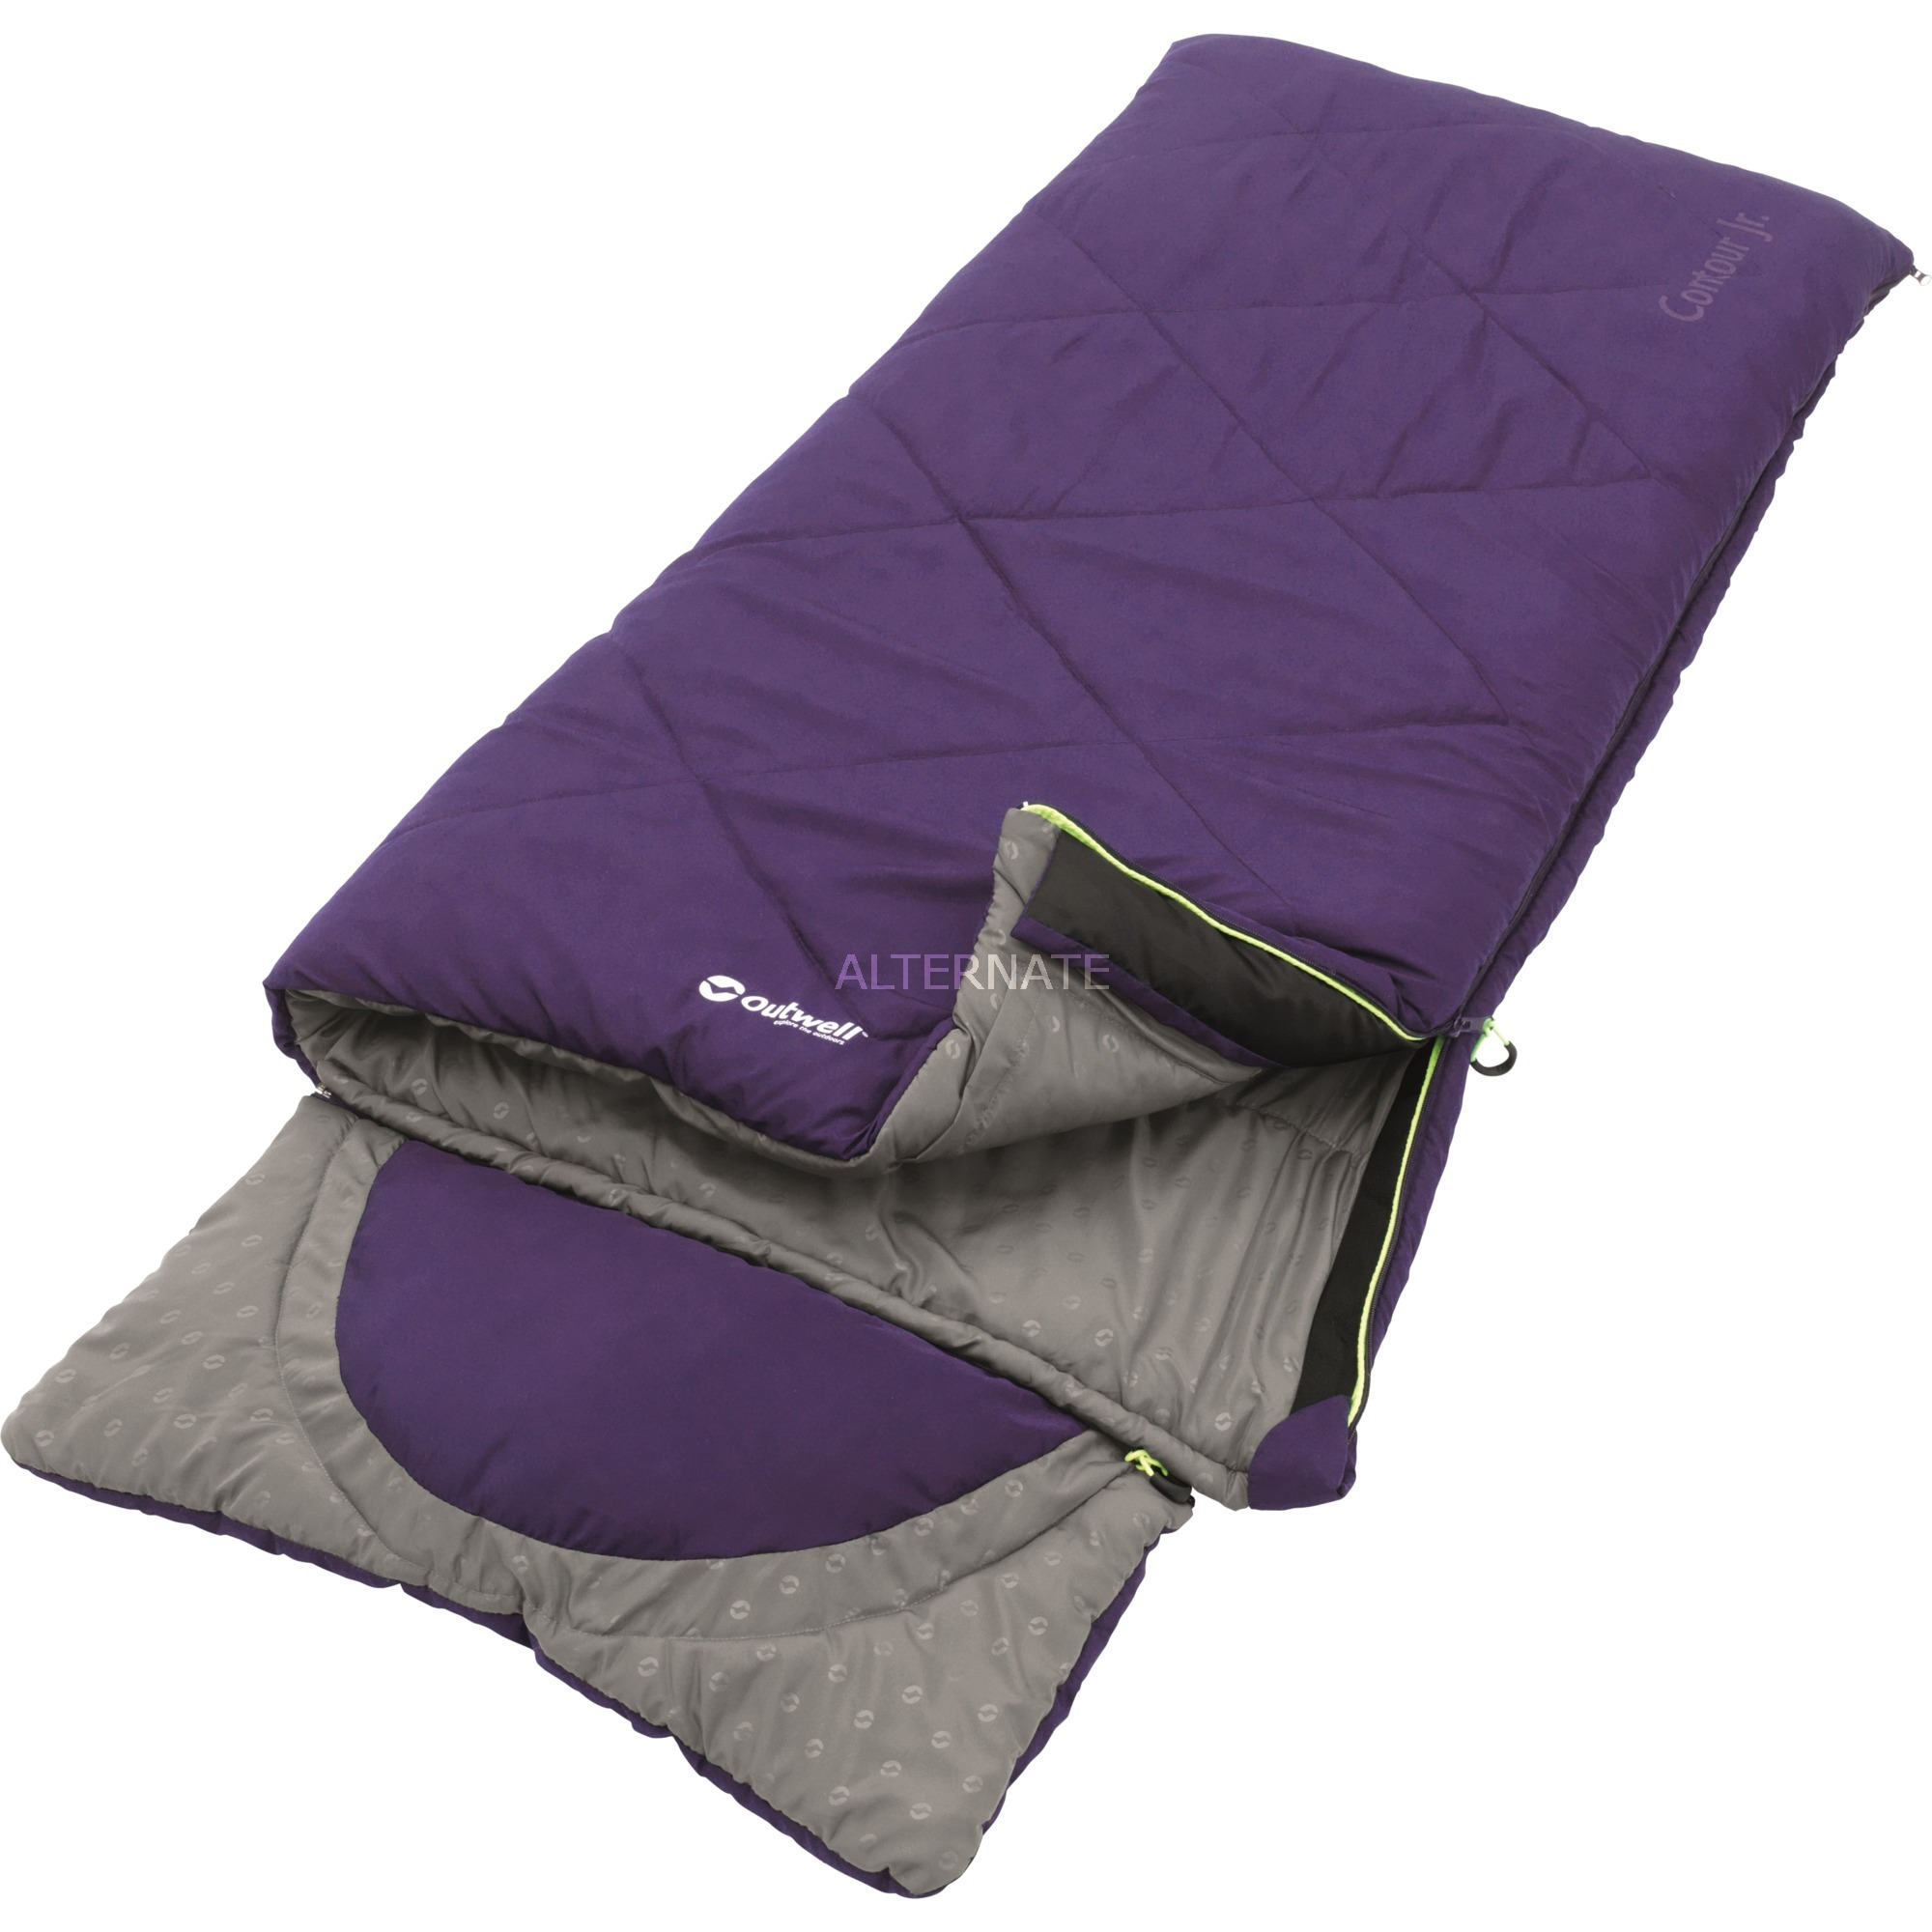 Contour Junior Enfants Rectangular sleeping bag Microfibre,Polyester Violet, Sac de couchage